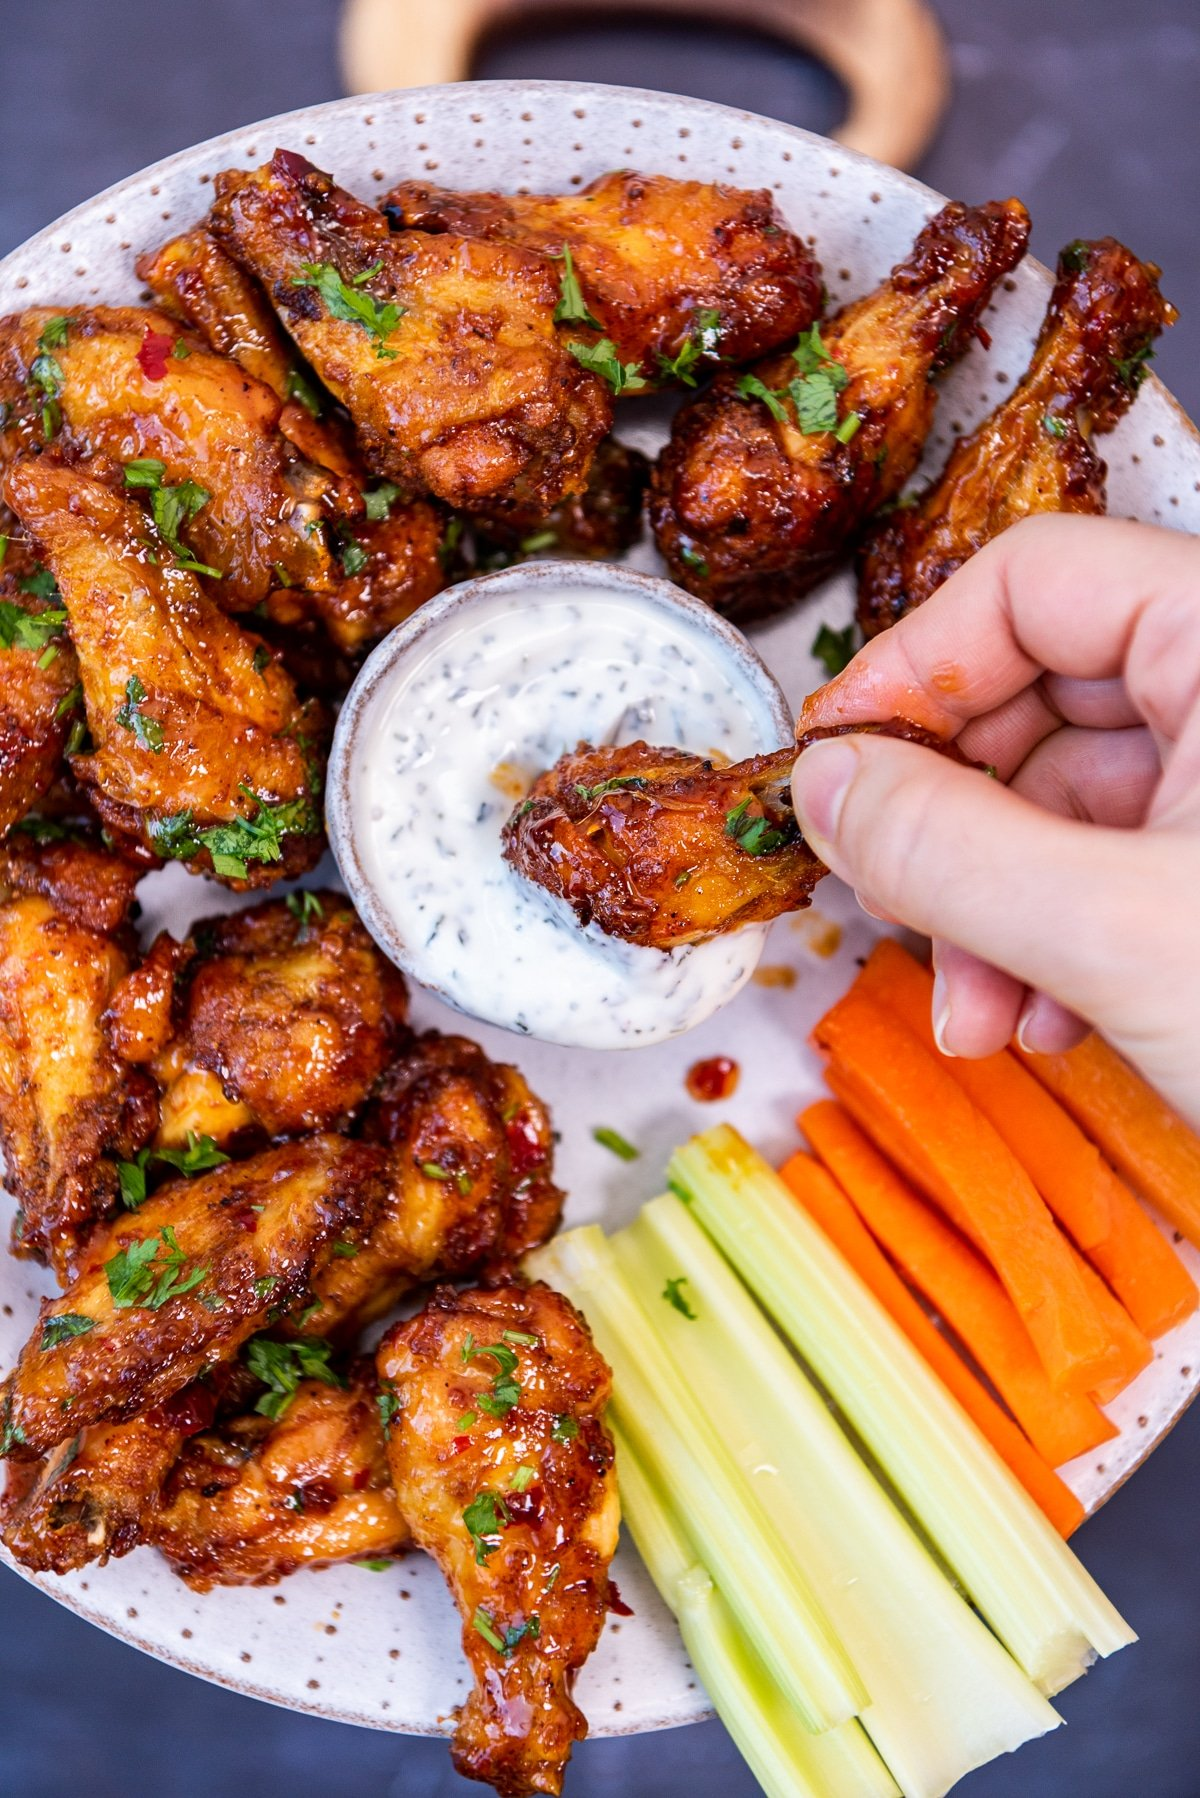 A hand dipping a spicy chicken wing into yogurt sauce and other chicken wings, carrot and celery sticks on the side.